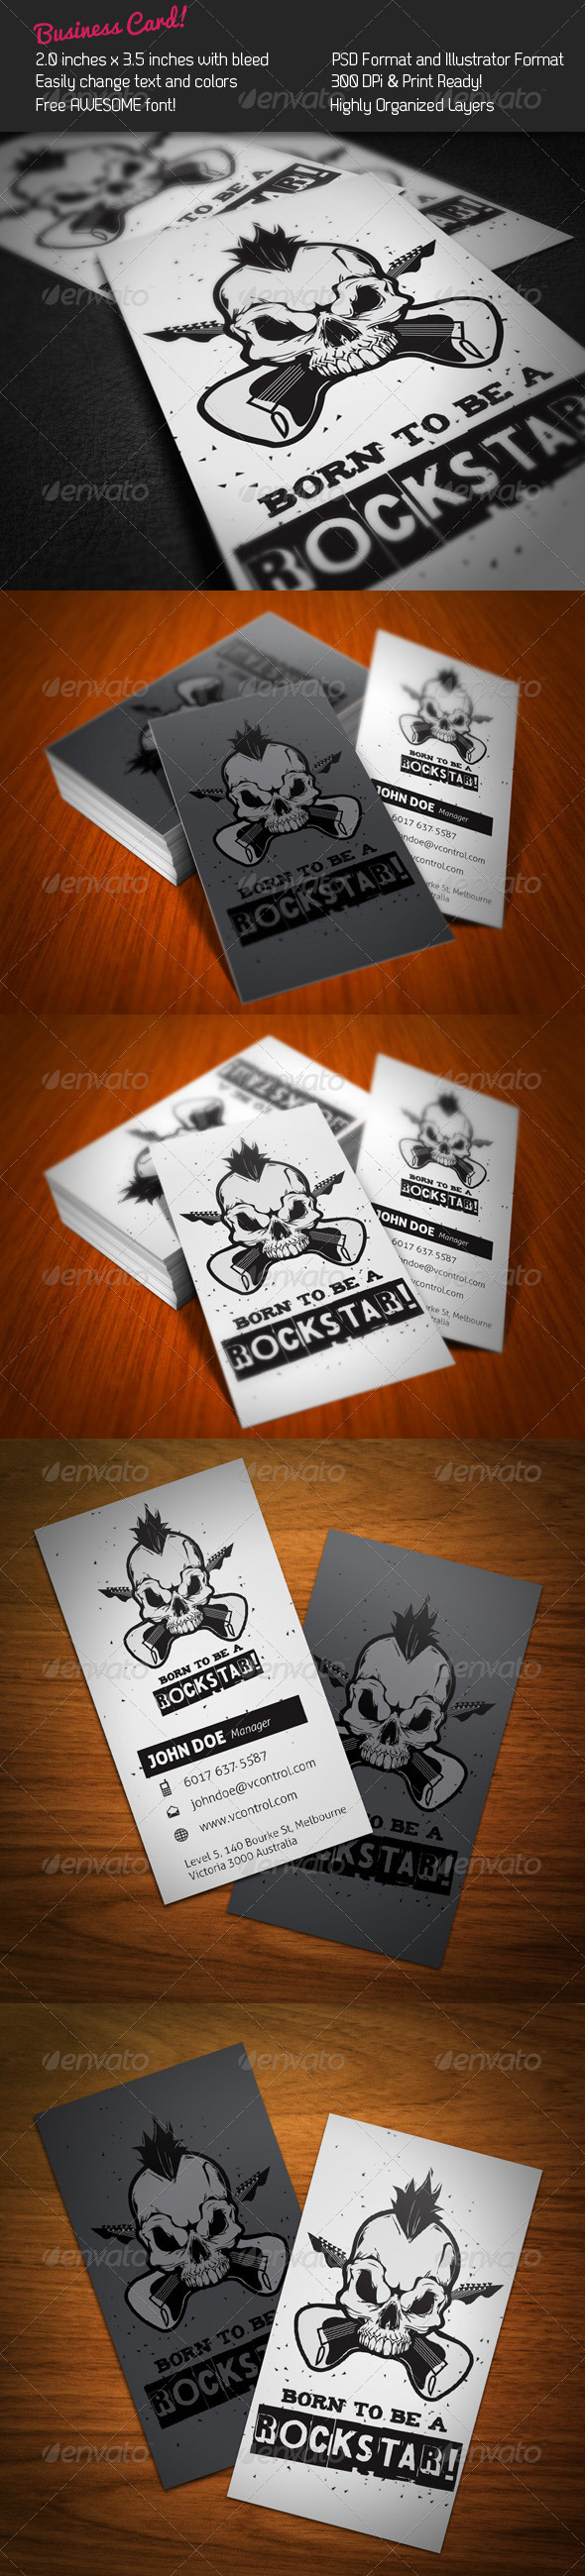 Rockstar Business Card - Creative Business Cards